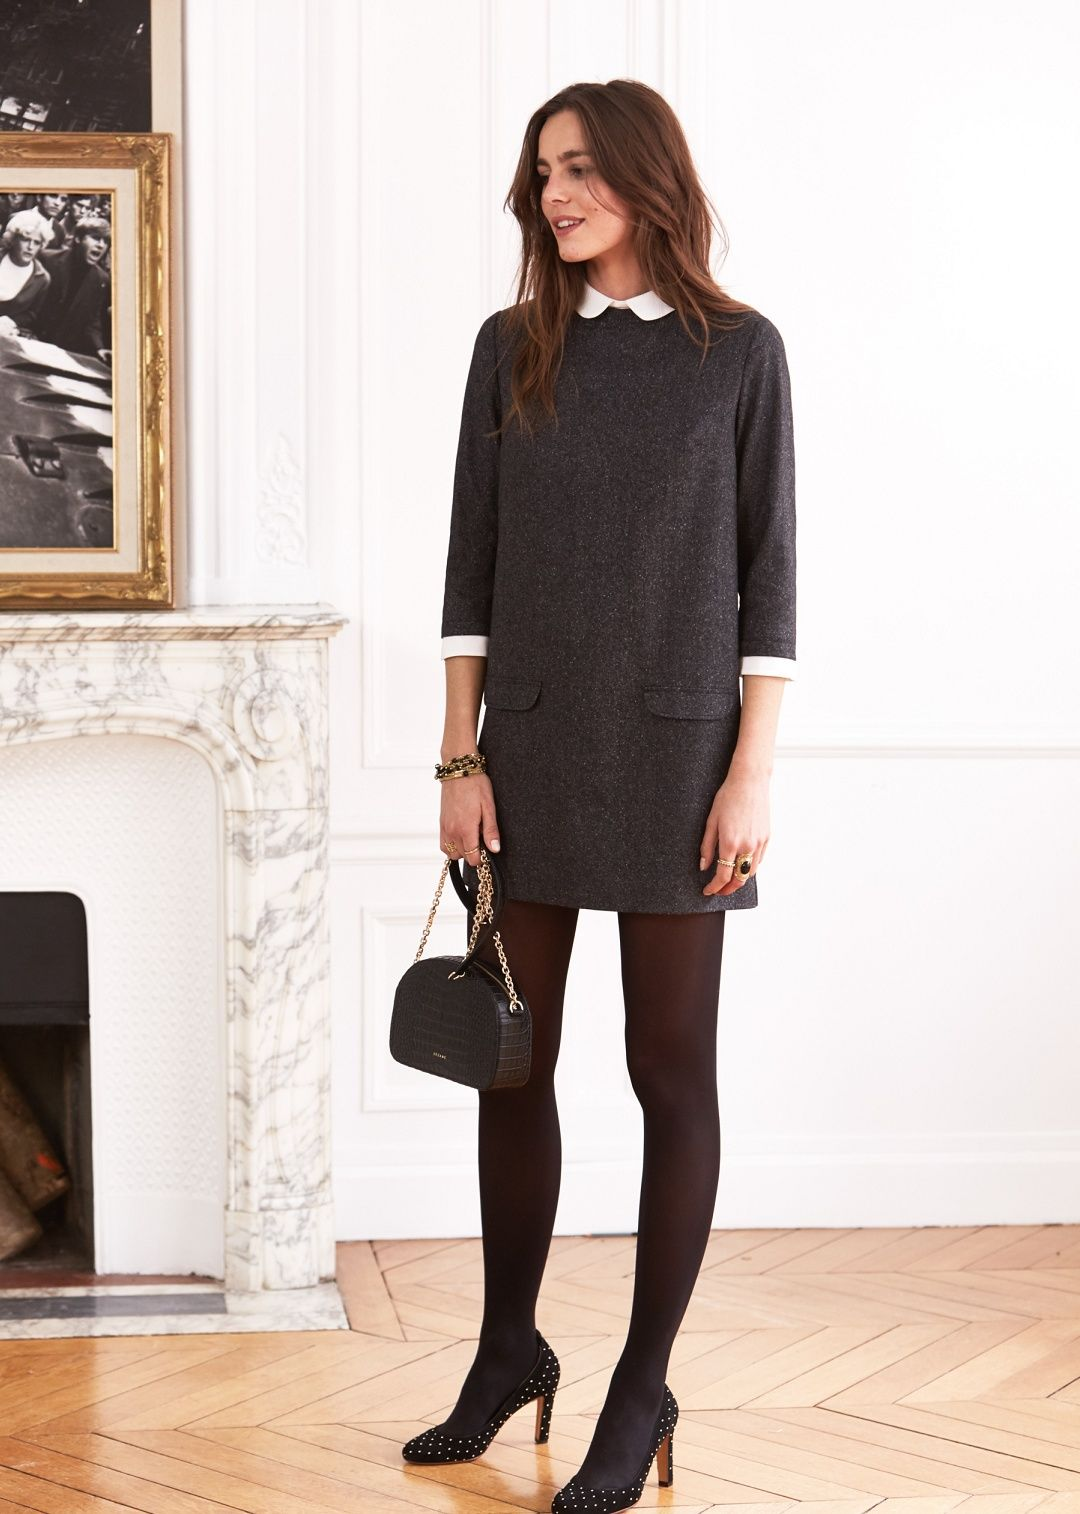 Sezane's Winter Collection Launched Today | saved ...